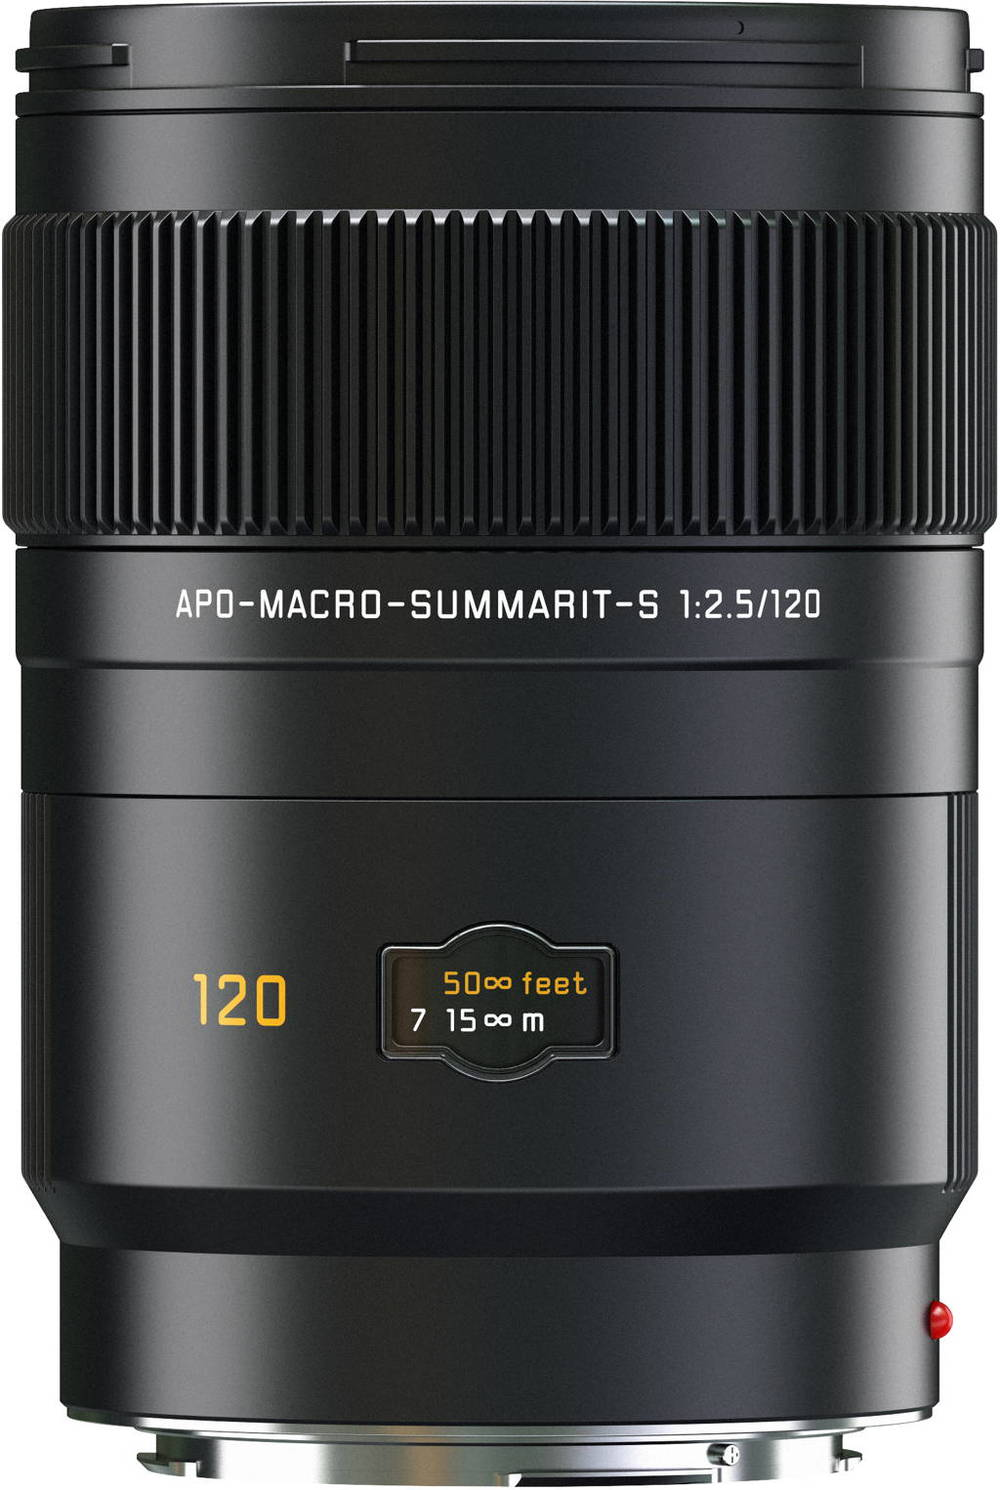 LEICA-APO-MACRO-SUMMARIT-S-25_120-mm.jpg